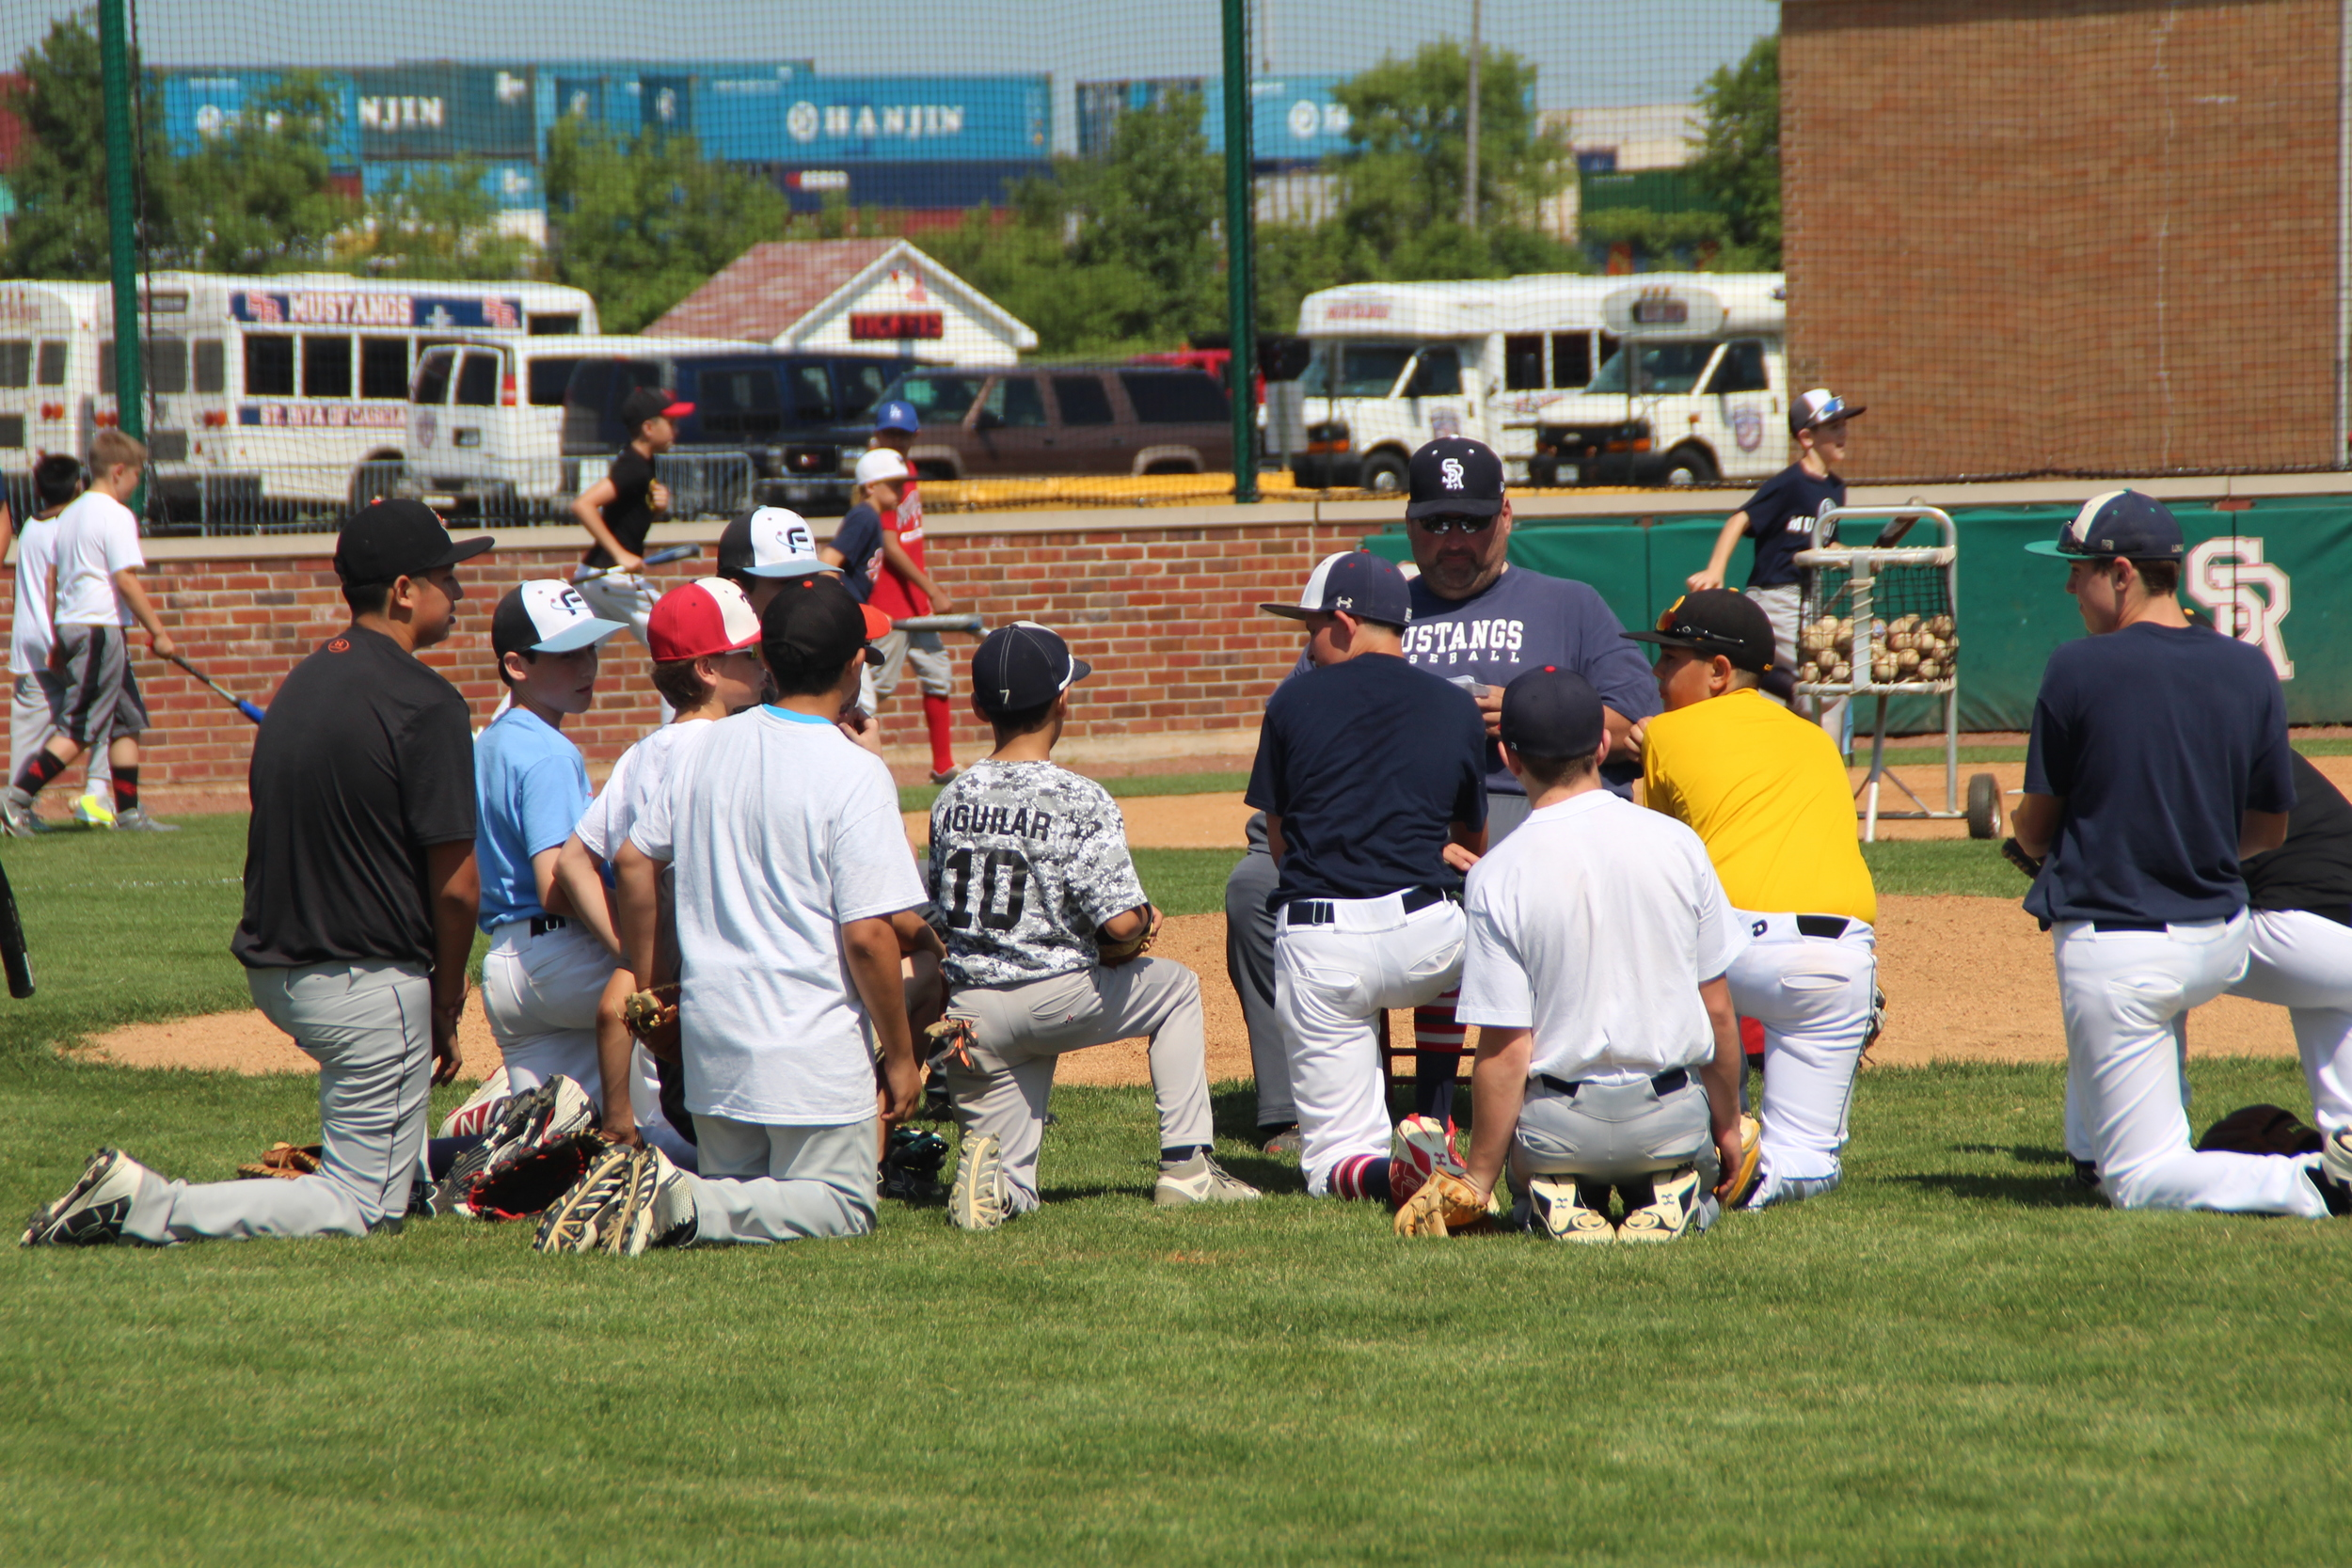 Coach John Nee' 93 talks to the baseball campers